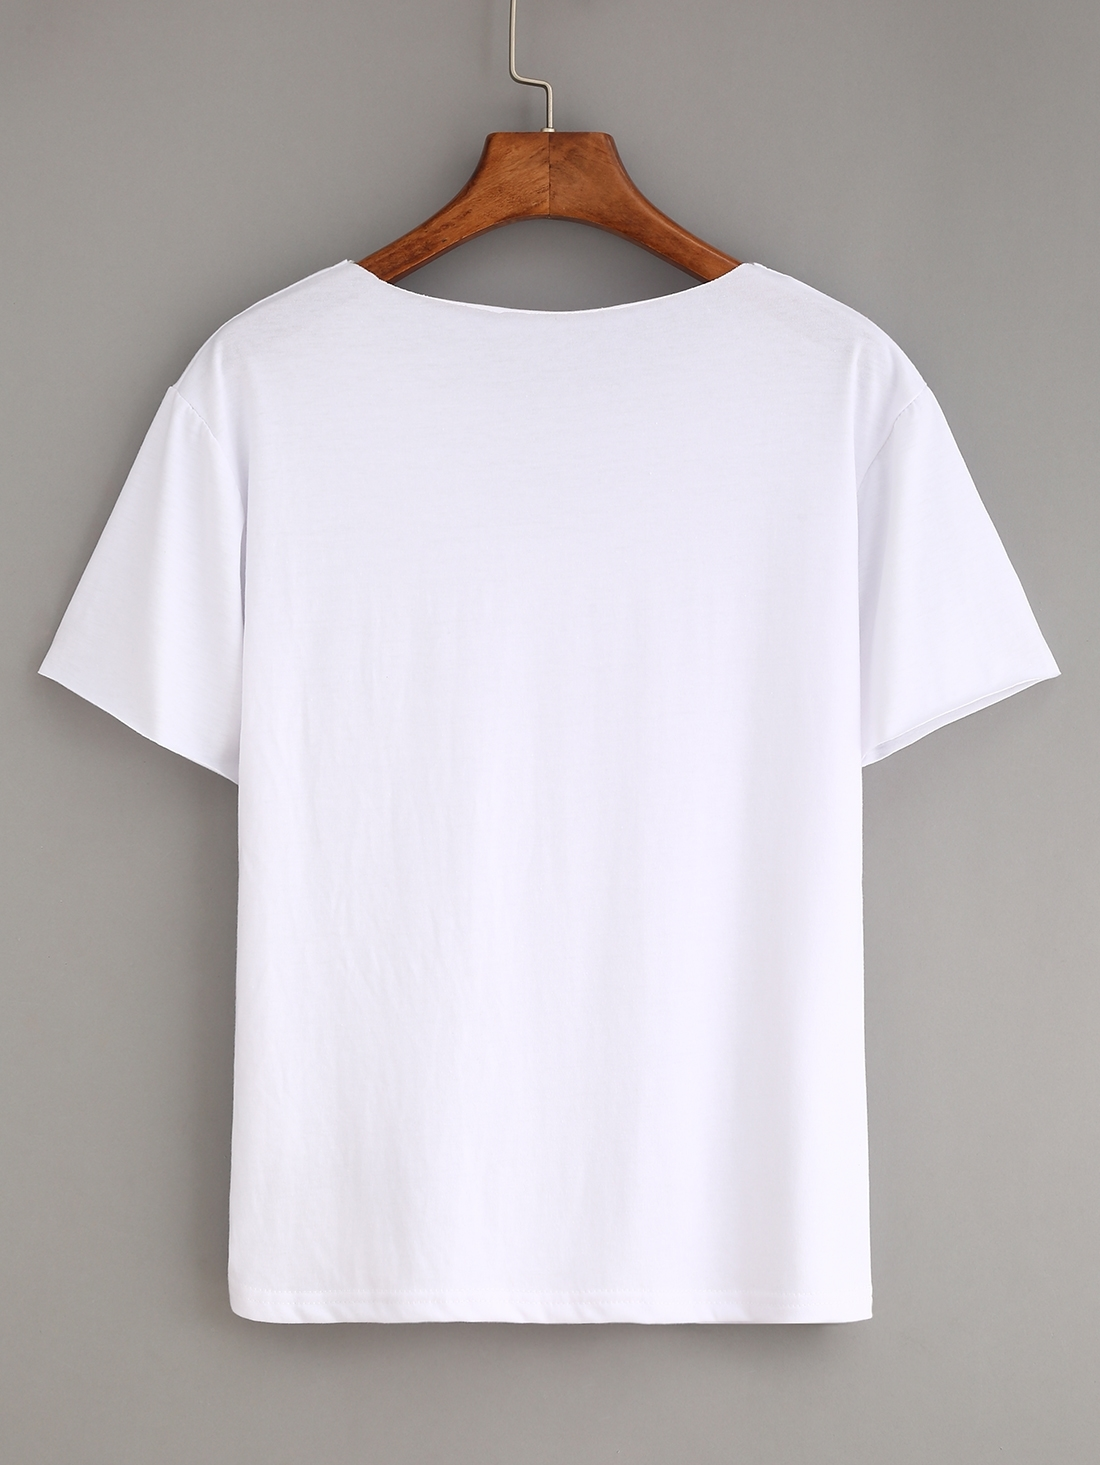 Shop for white t shirt online at Target. Free shipping on purchases over $35 and save 5% every day with your Target REDcard.